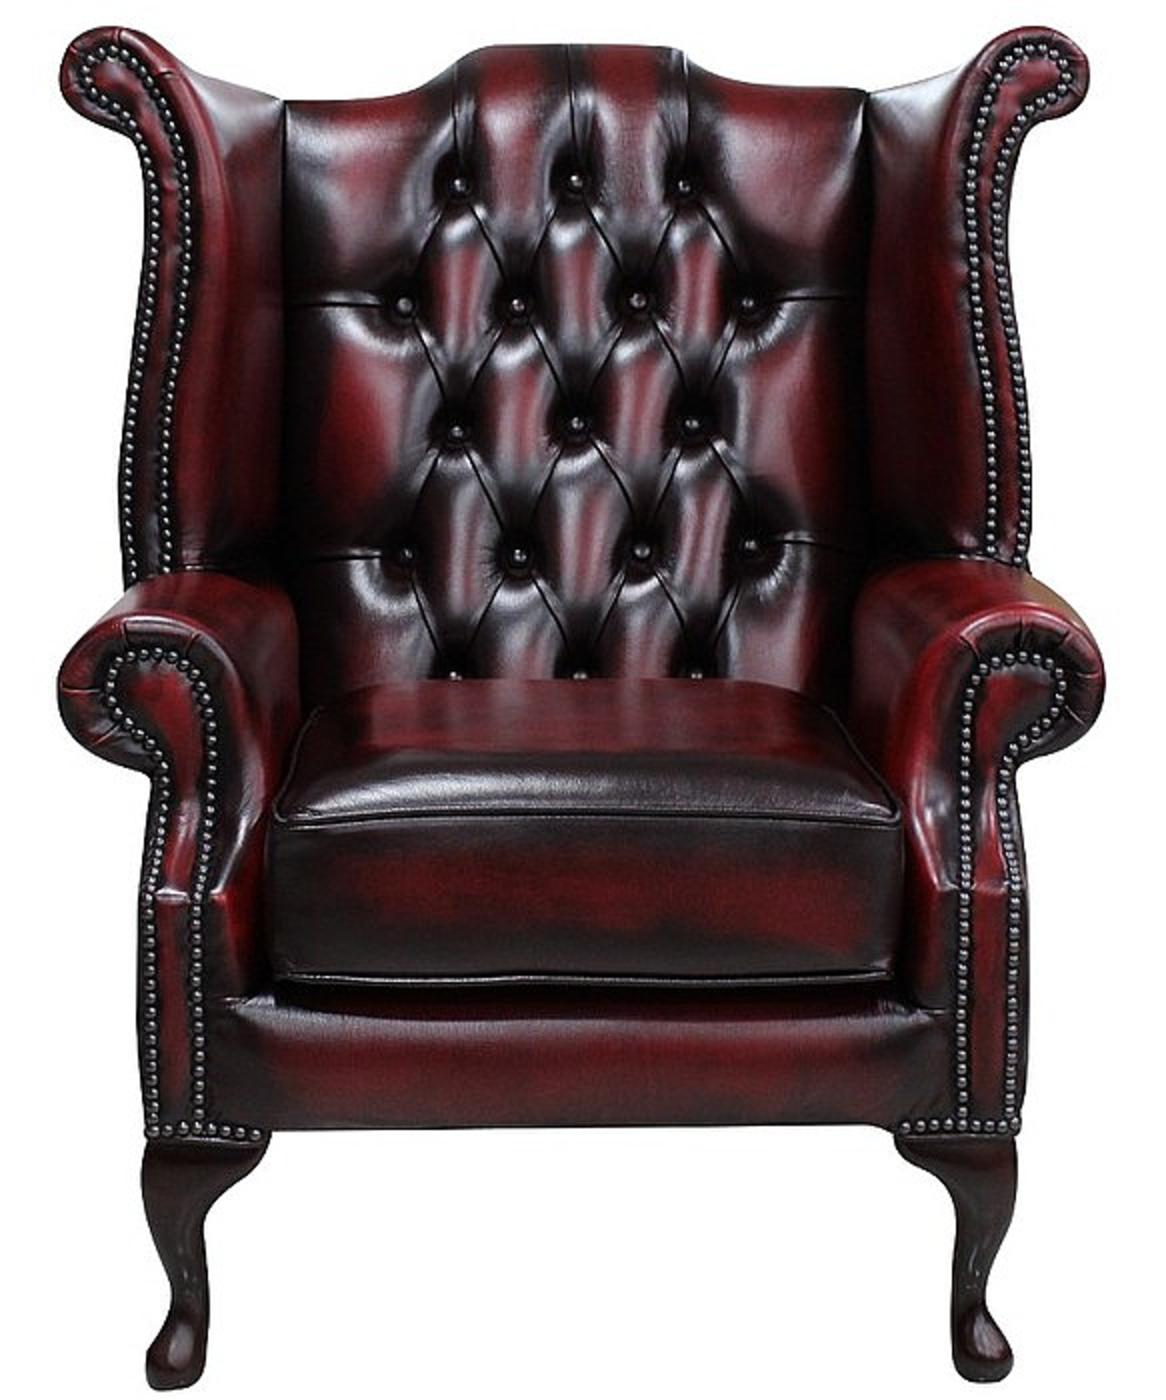 wingback chair uk beach towels with pocket for lounge chesterfield queen anne high back wing manufactured antique oxblood plain